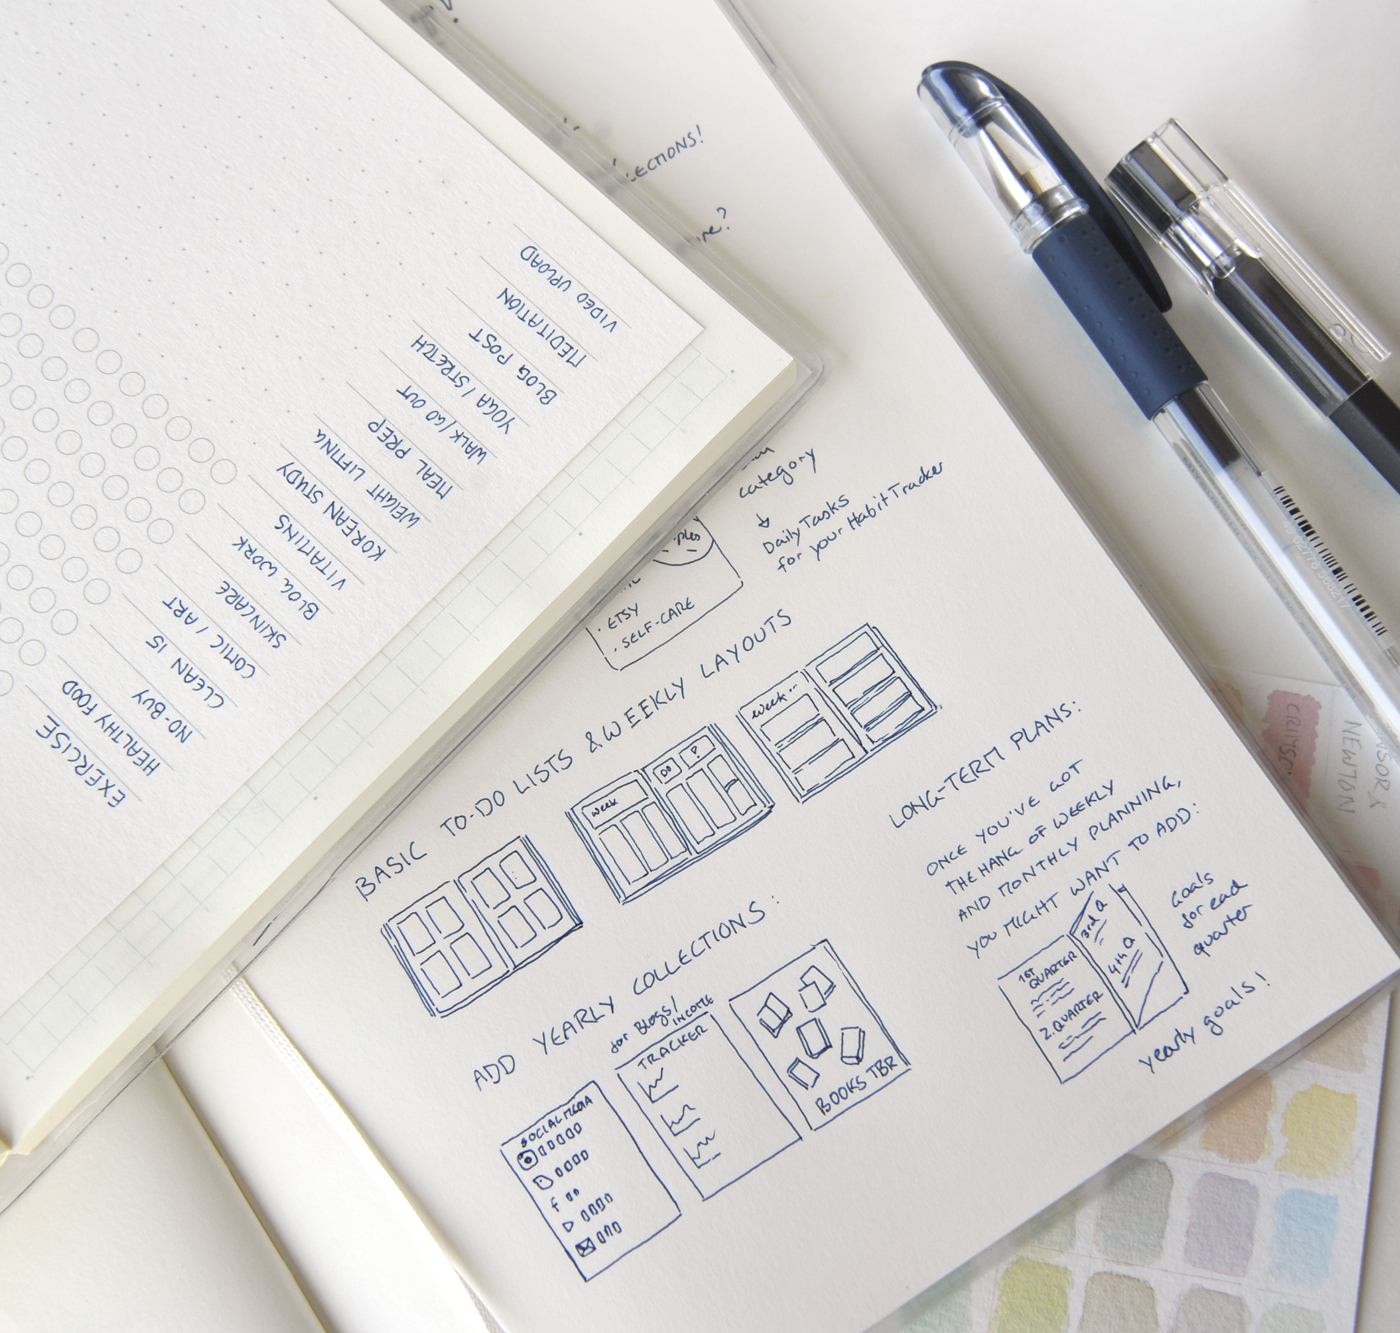 Habit Trackers and simple bullet journal ideas for bloggers, self-employed creatives and busy people! Carefully choosing your daily habits and recurring tasks is a simple way to make sure that at the end of the month, you've invested time and effort into what matters to you!